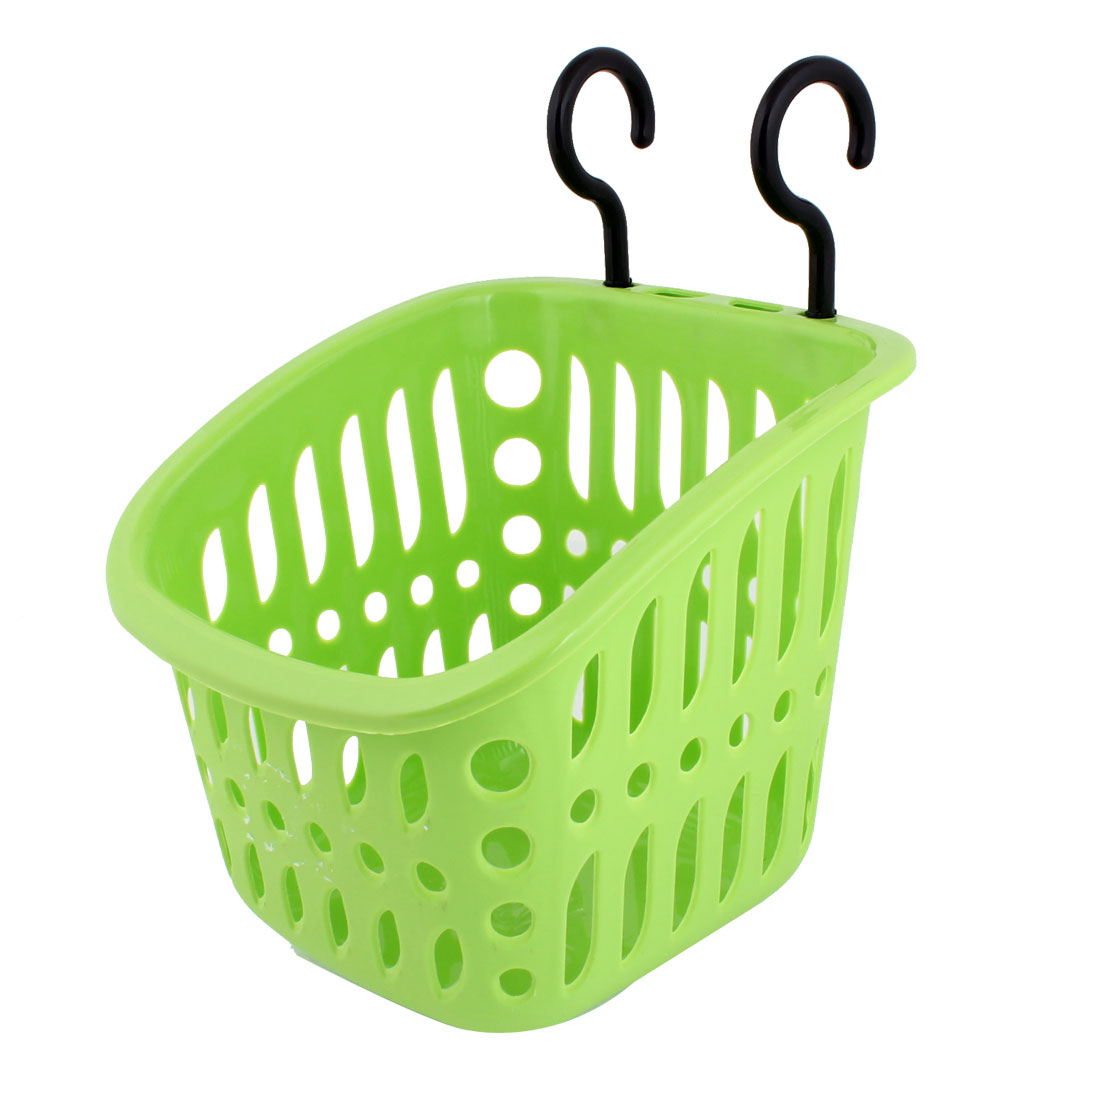 Kitchen Green Plastic Storing Grid Basket Holder w Hooks